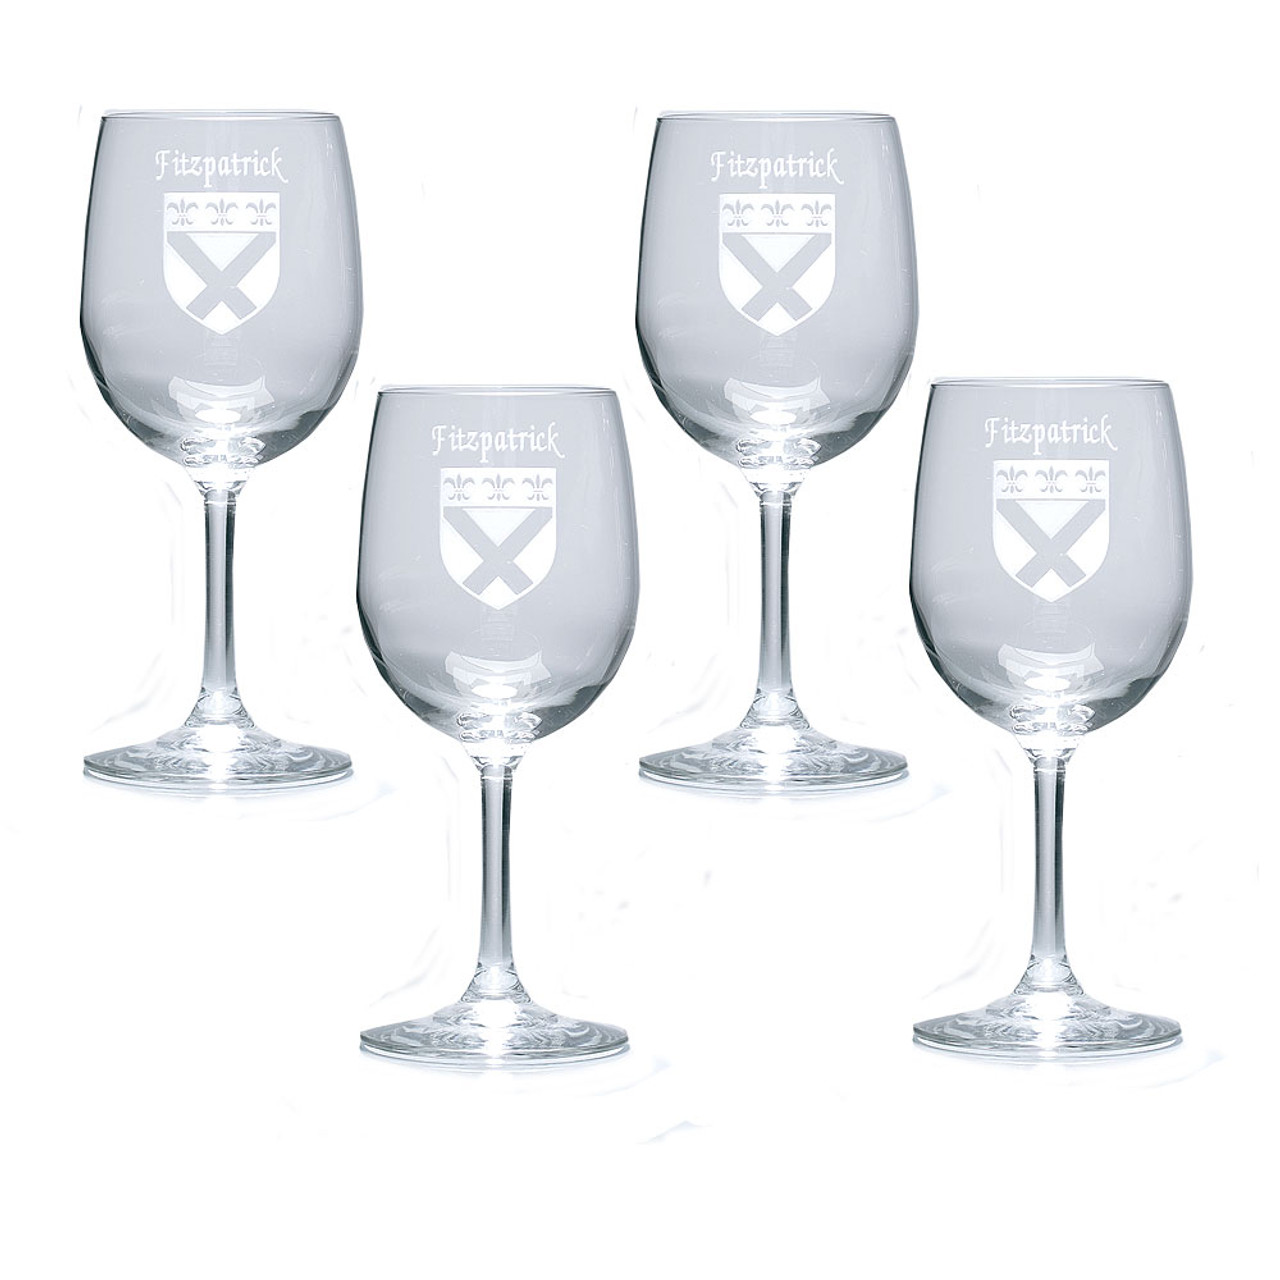 Personalized Family Name Coat of Arms Wine Glasses - Set of 4